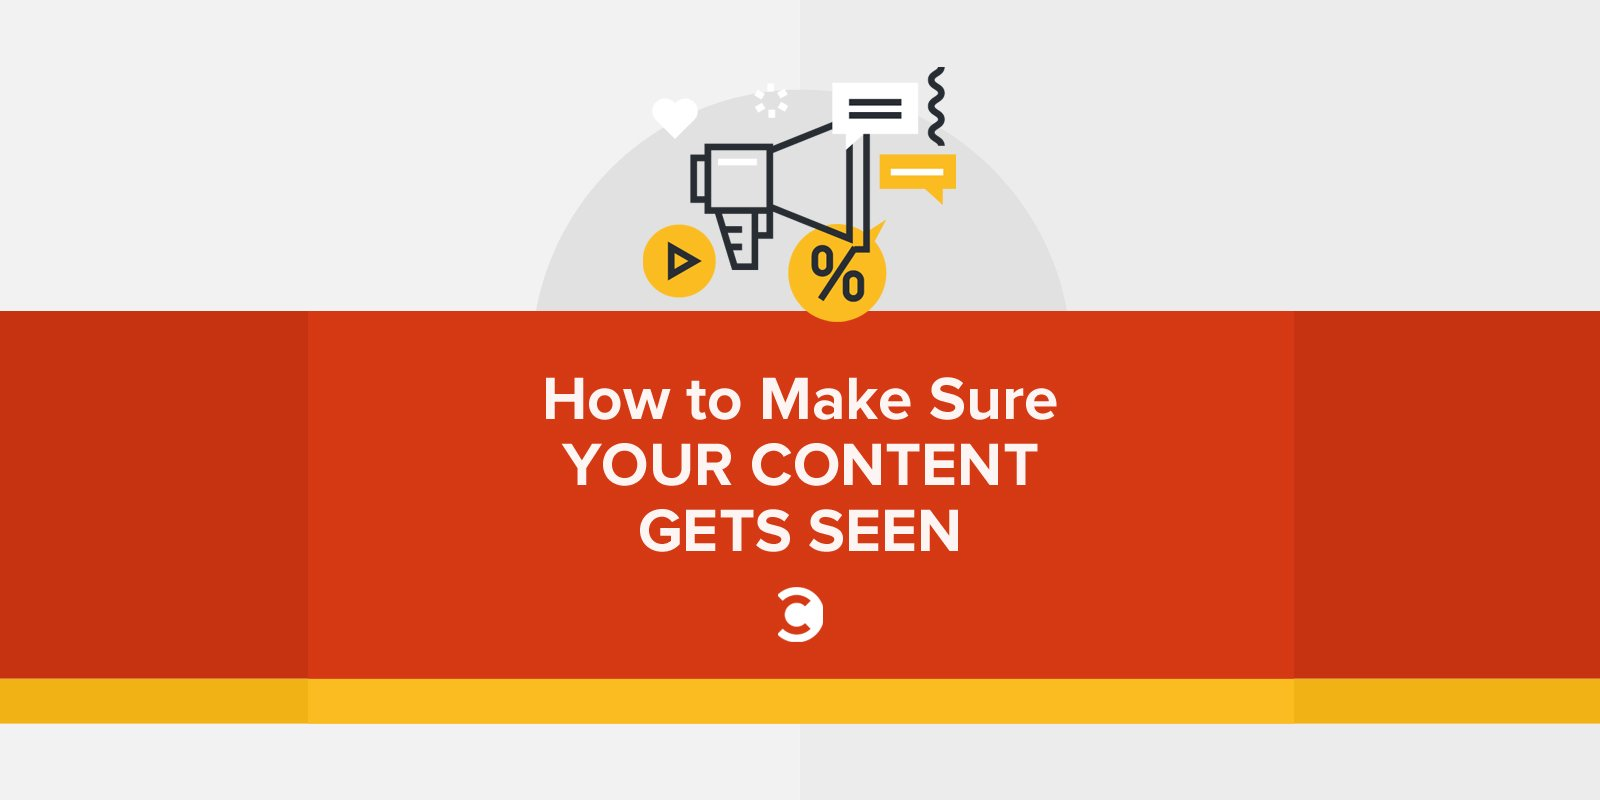 How to Make Sure Your Content Gets Seen